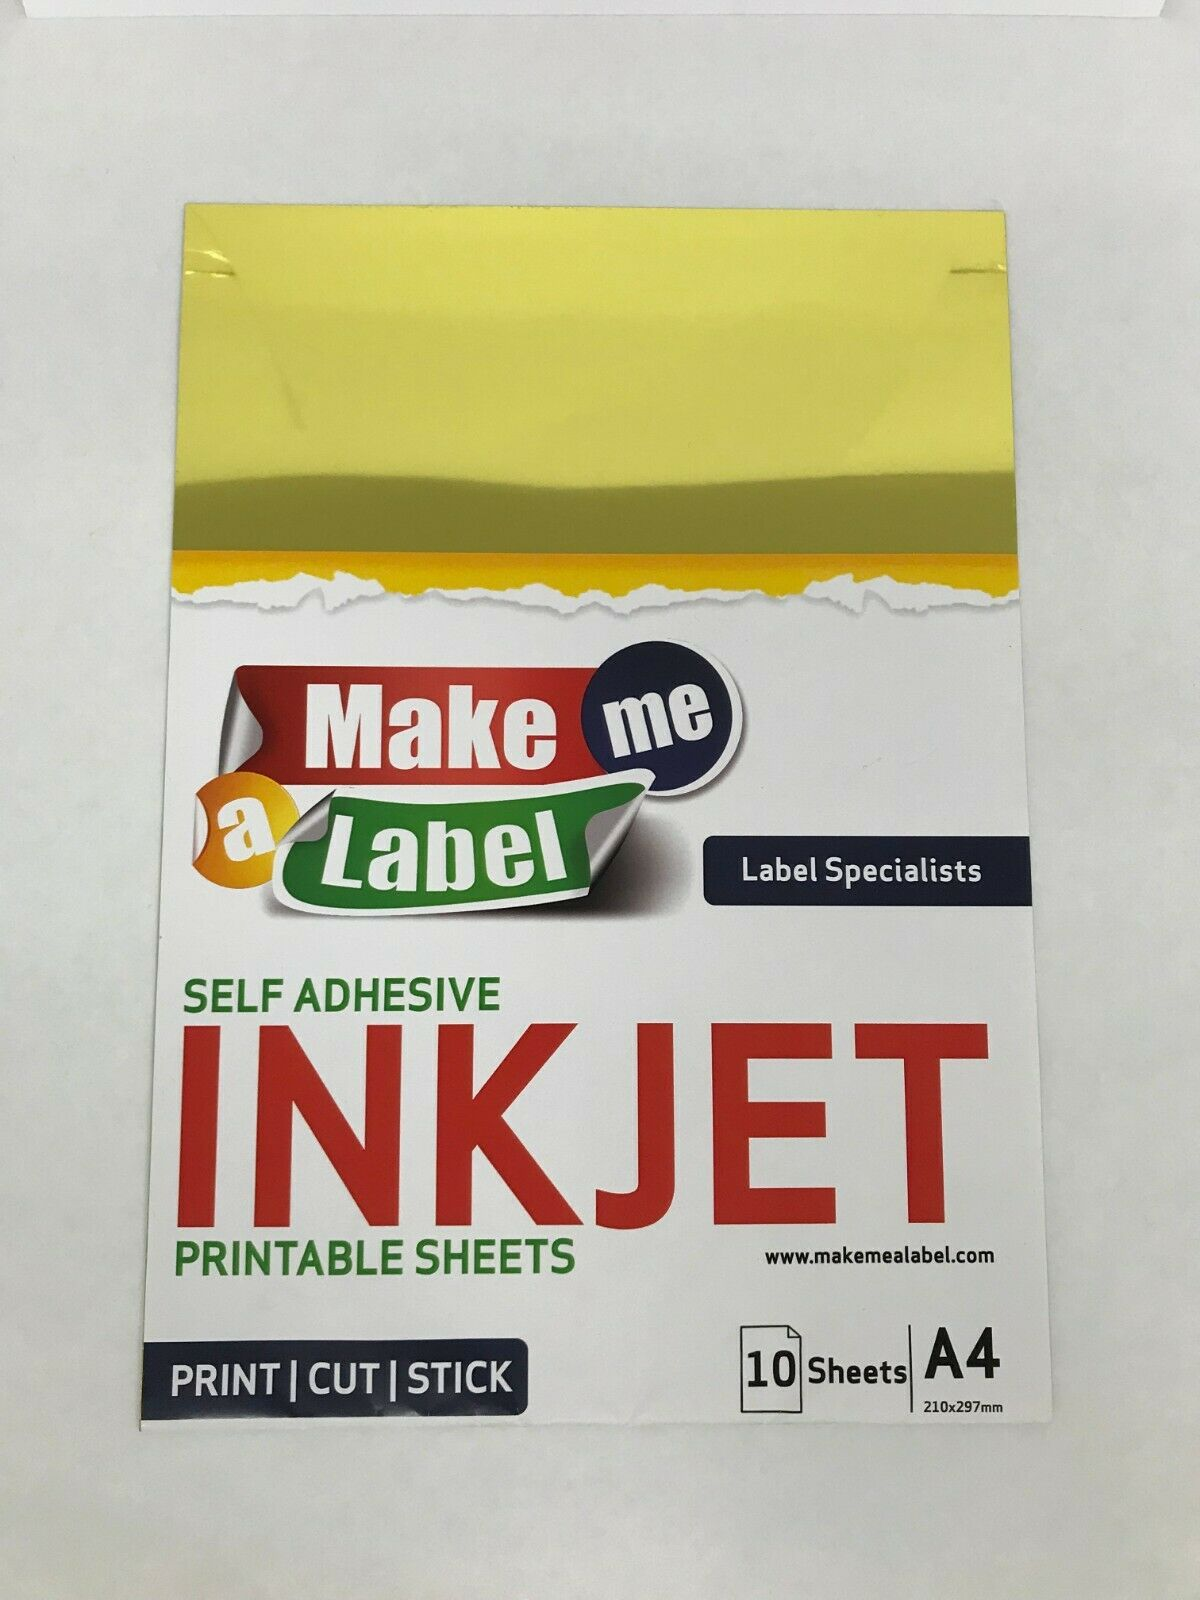 Gold A4 Self Adhesive Inkjet Printable